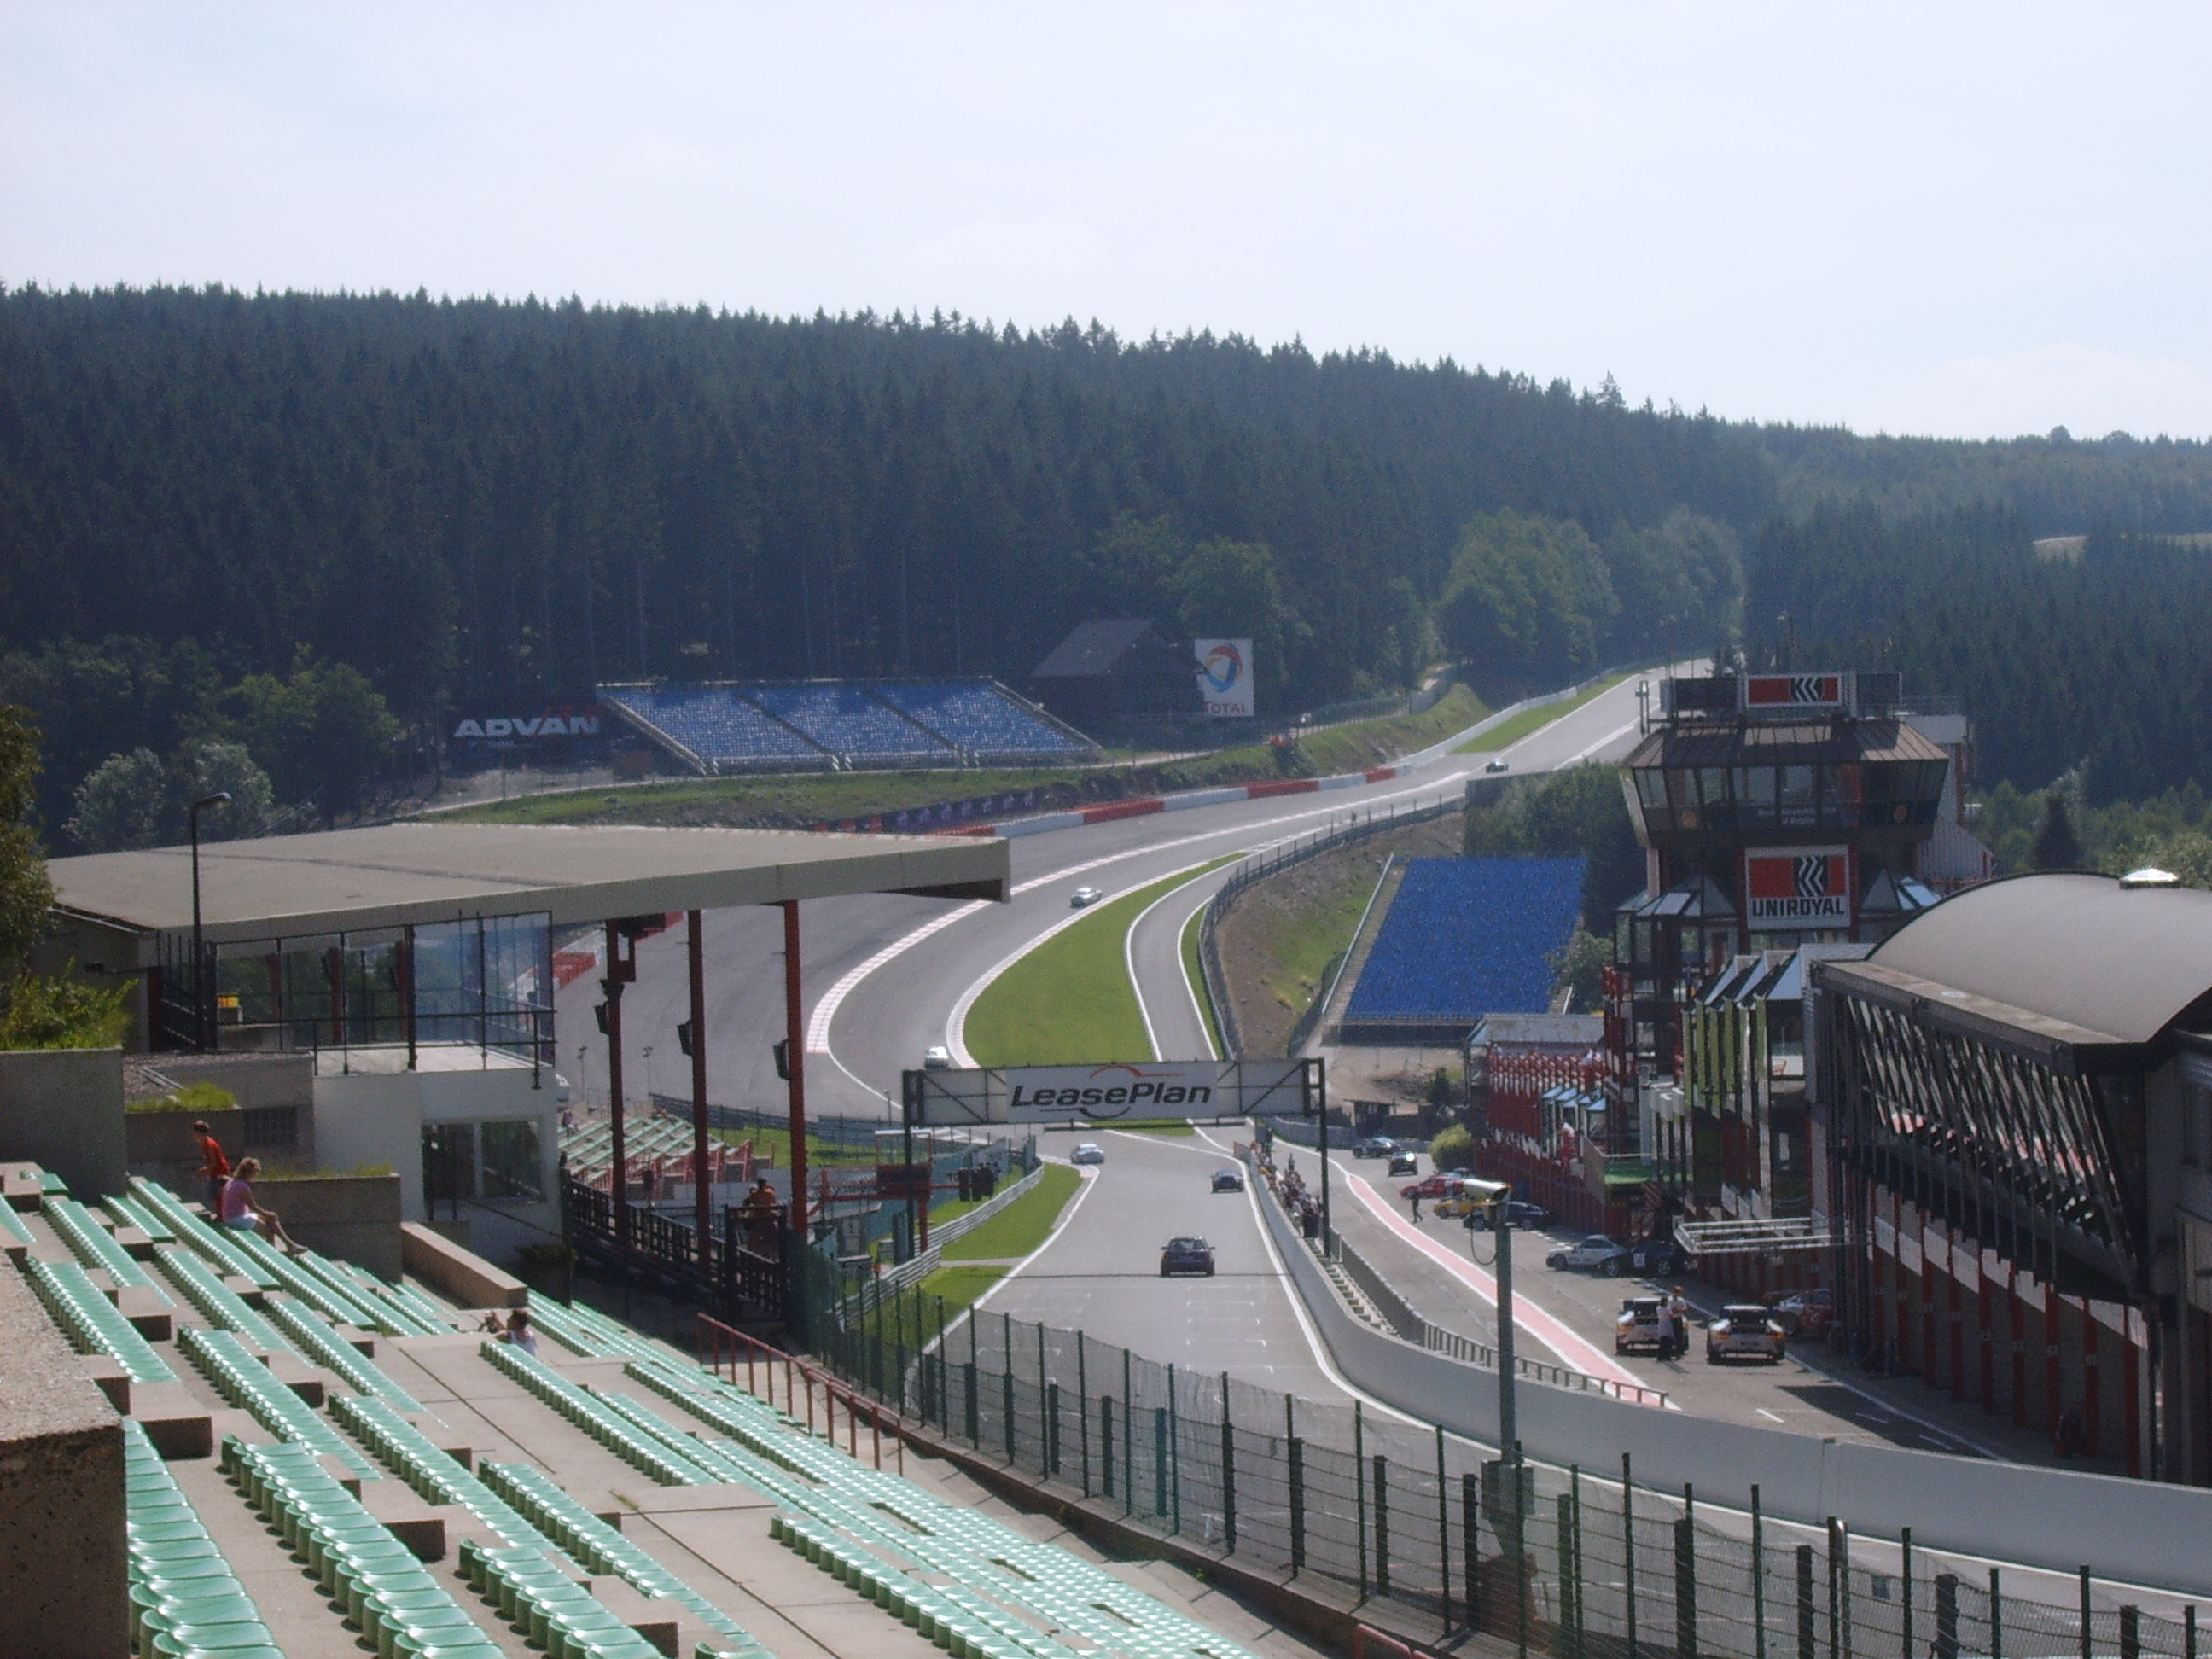 http://upload.wikimedia.org/wikipedia/commons/c/c2/Francorchamps01.jpg